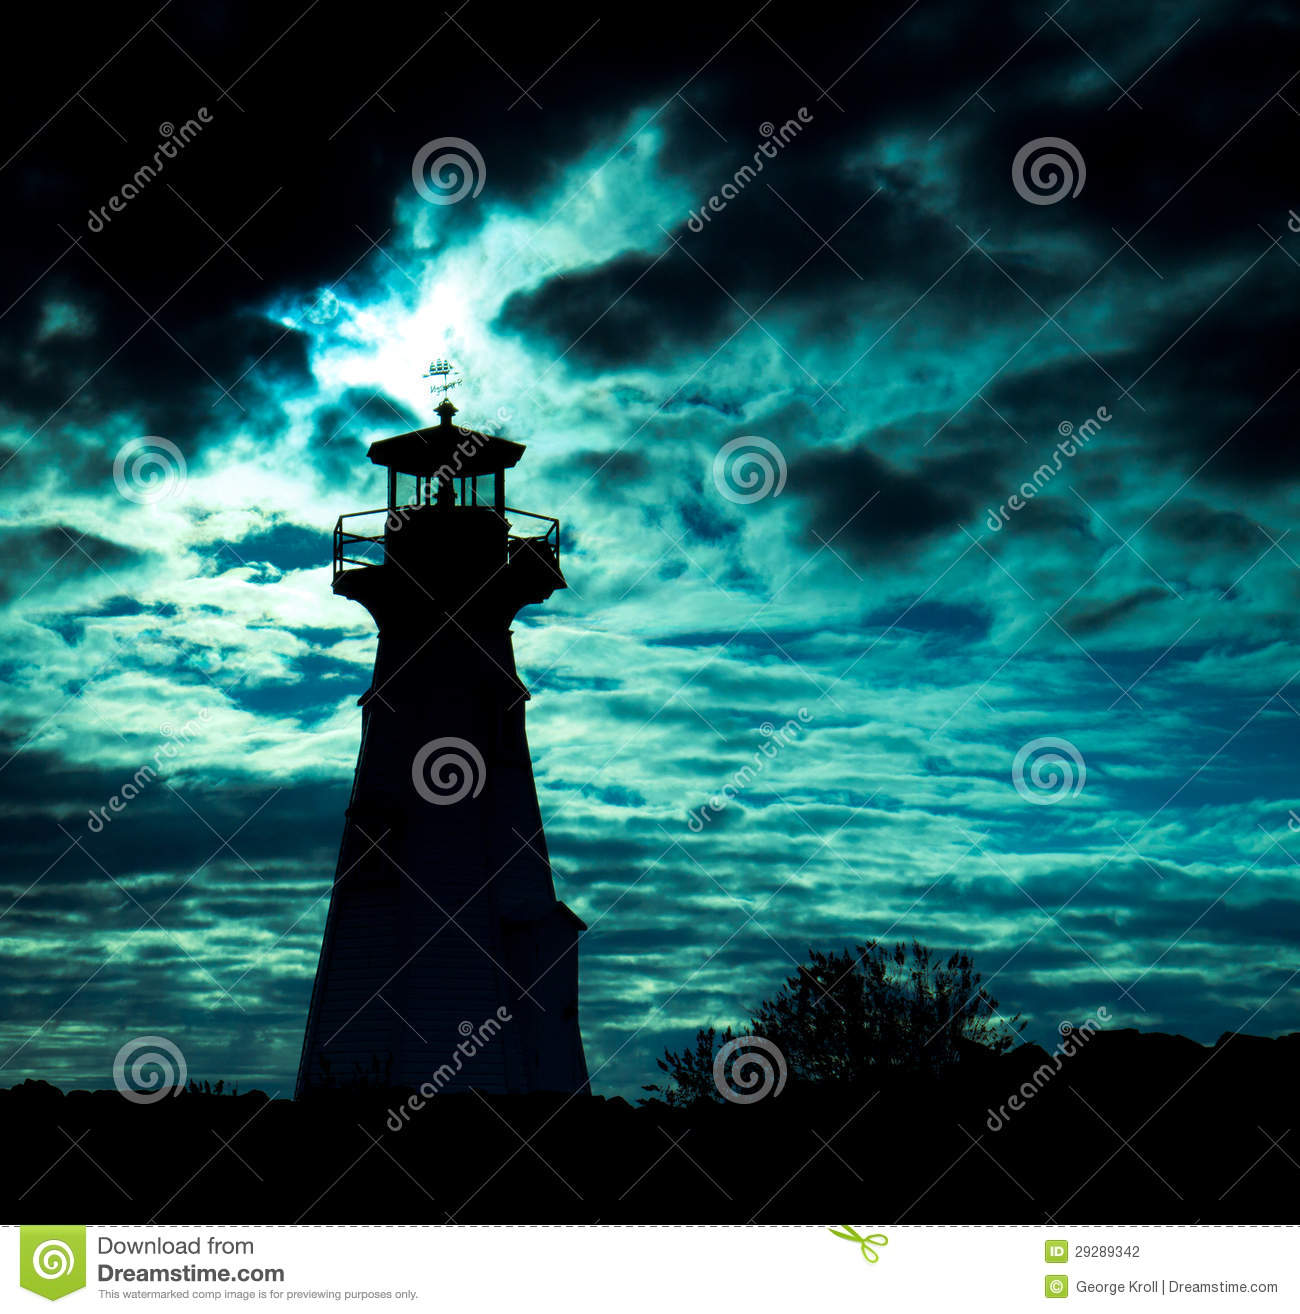 Lighthouse Silhouette Against Ominous Sky. Stock Photography.